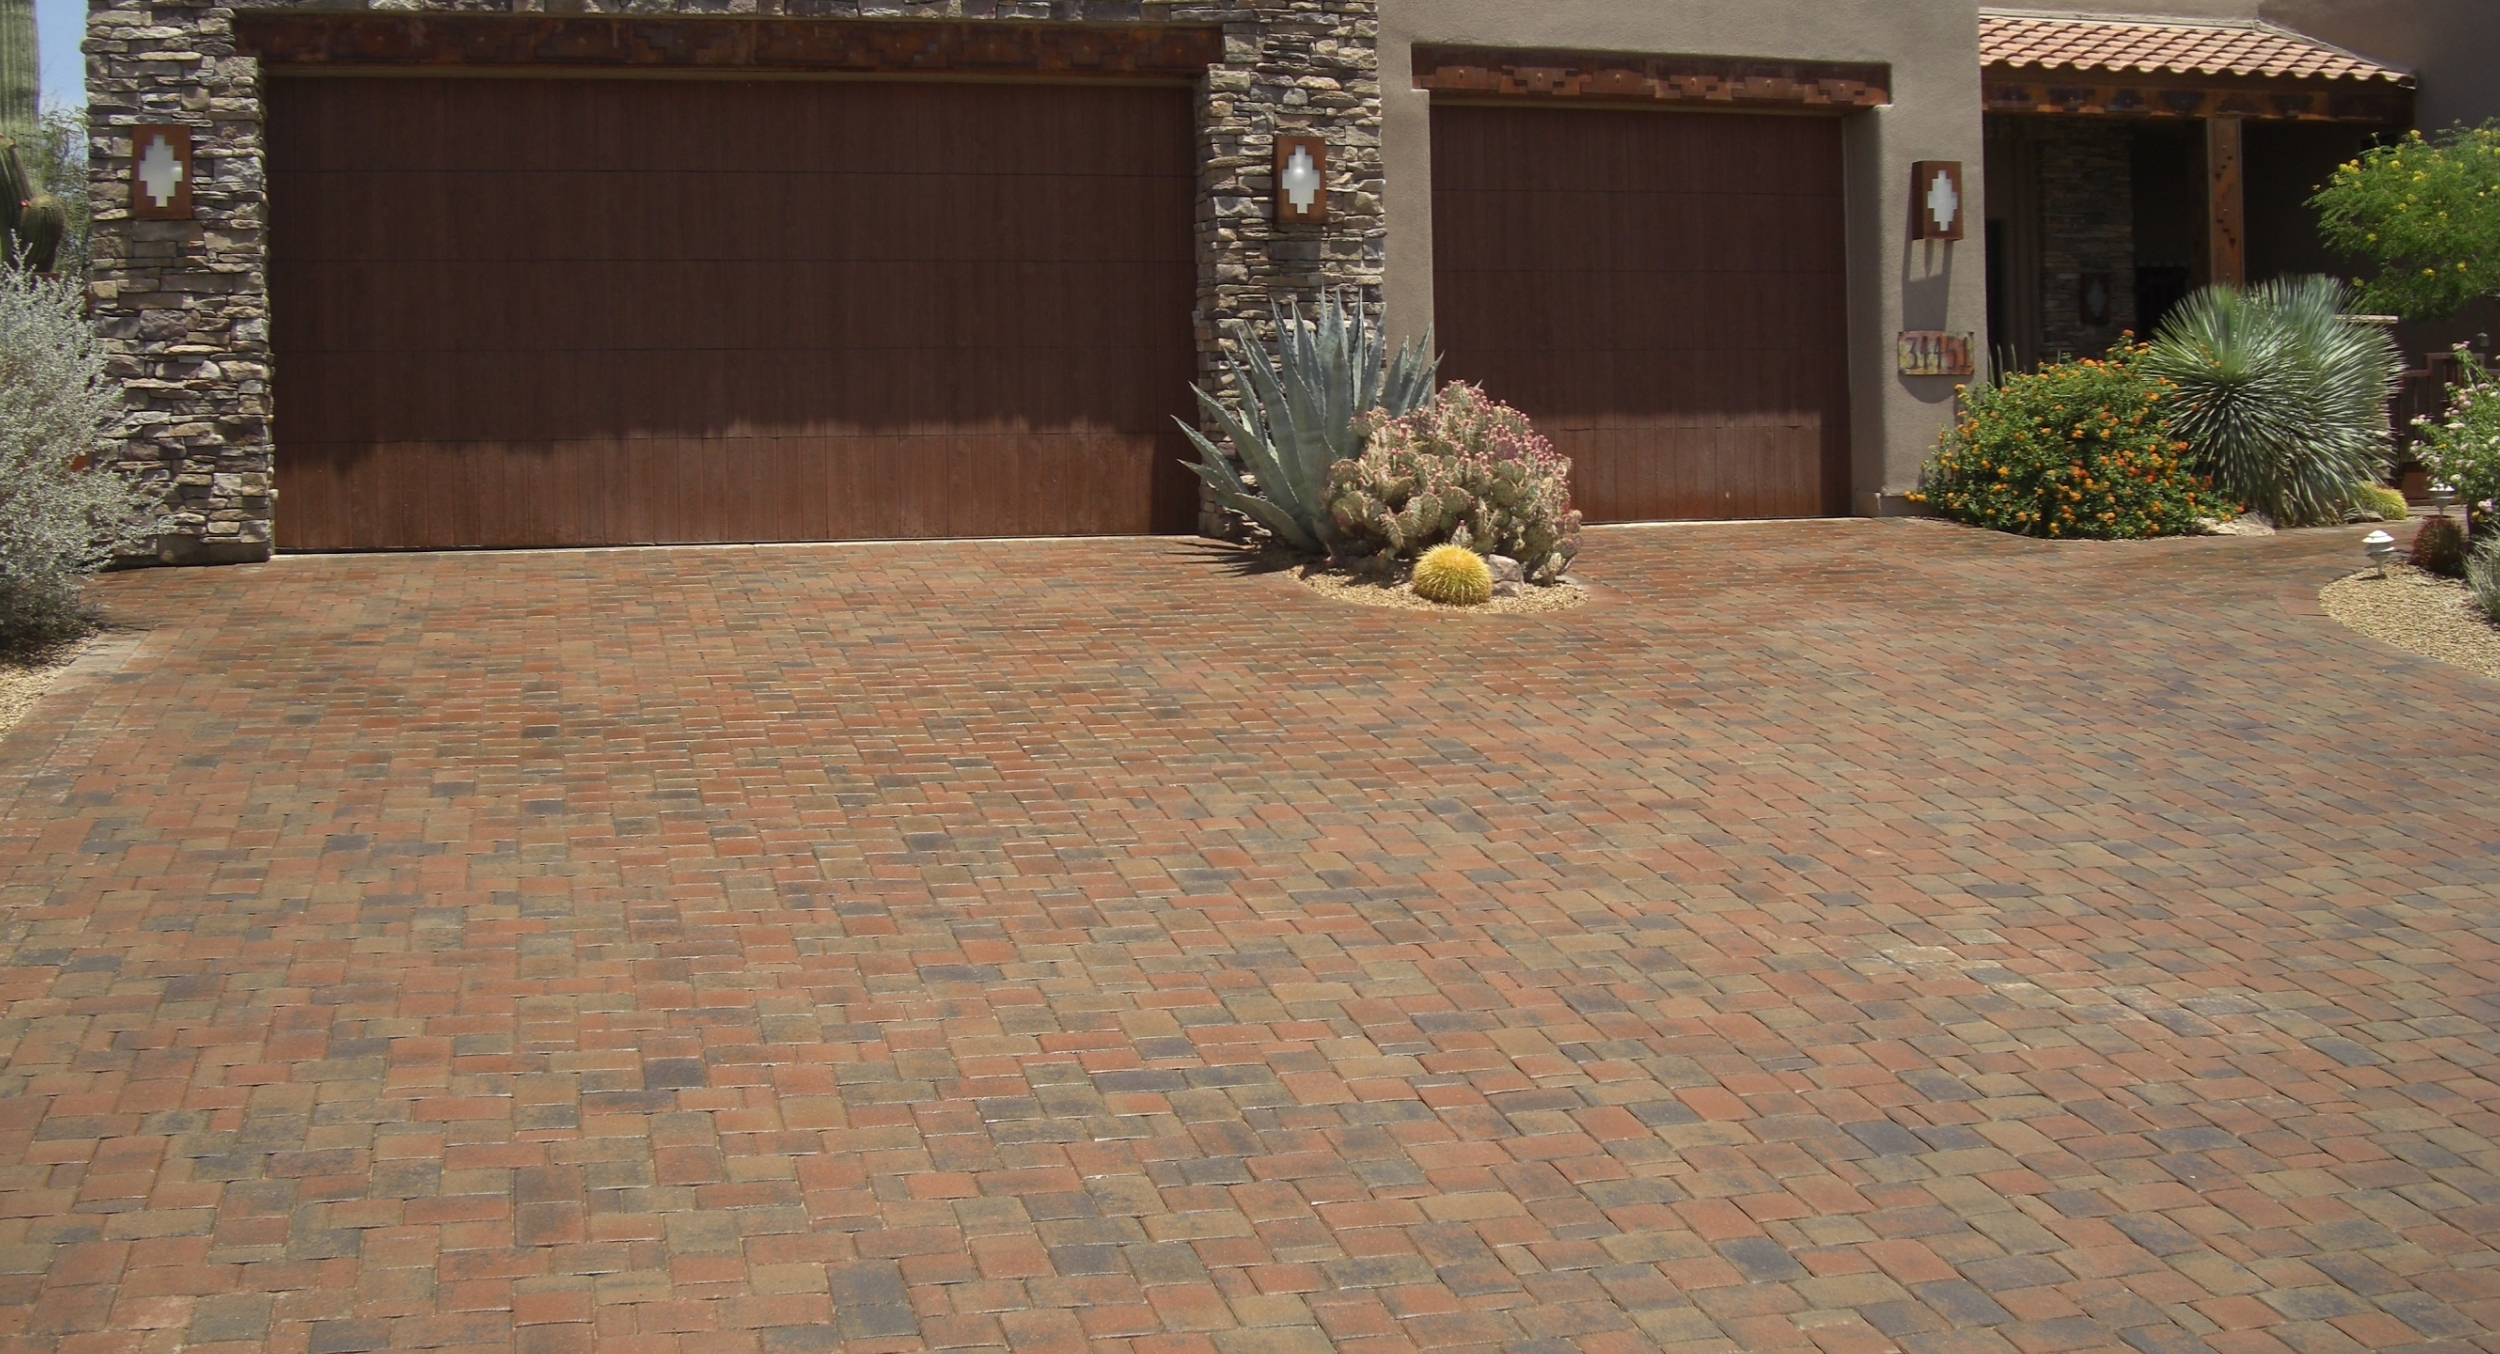 Take your pick between Scottsdale or Phoenix pavers and stone paving. The area being paved determines what material is best, like this driveway is done in pavers to bear vehicle weight better.